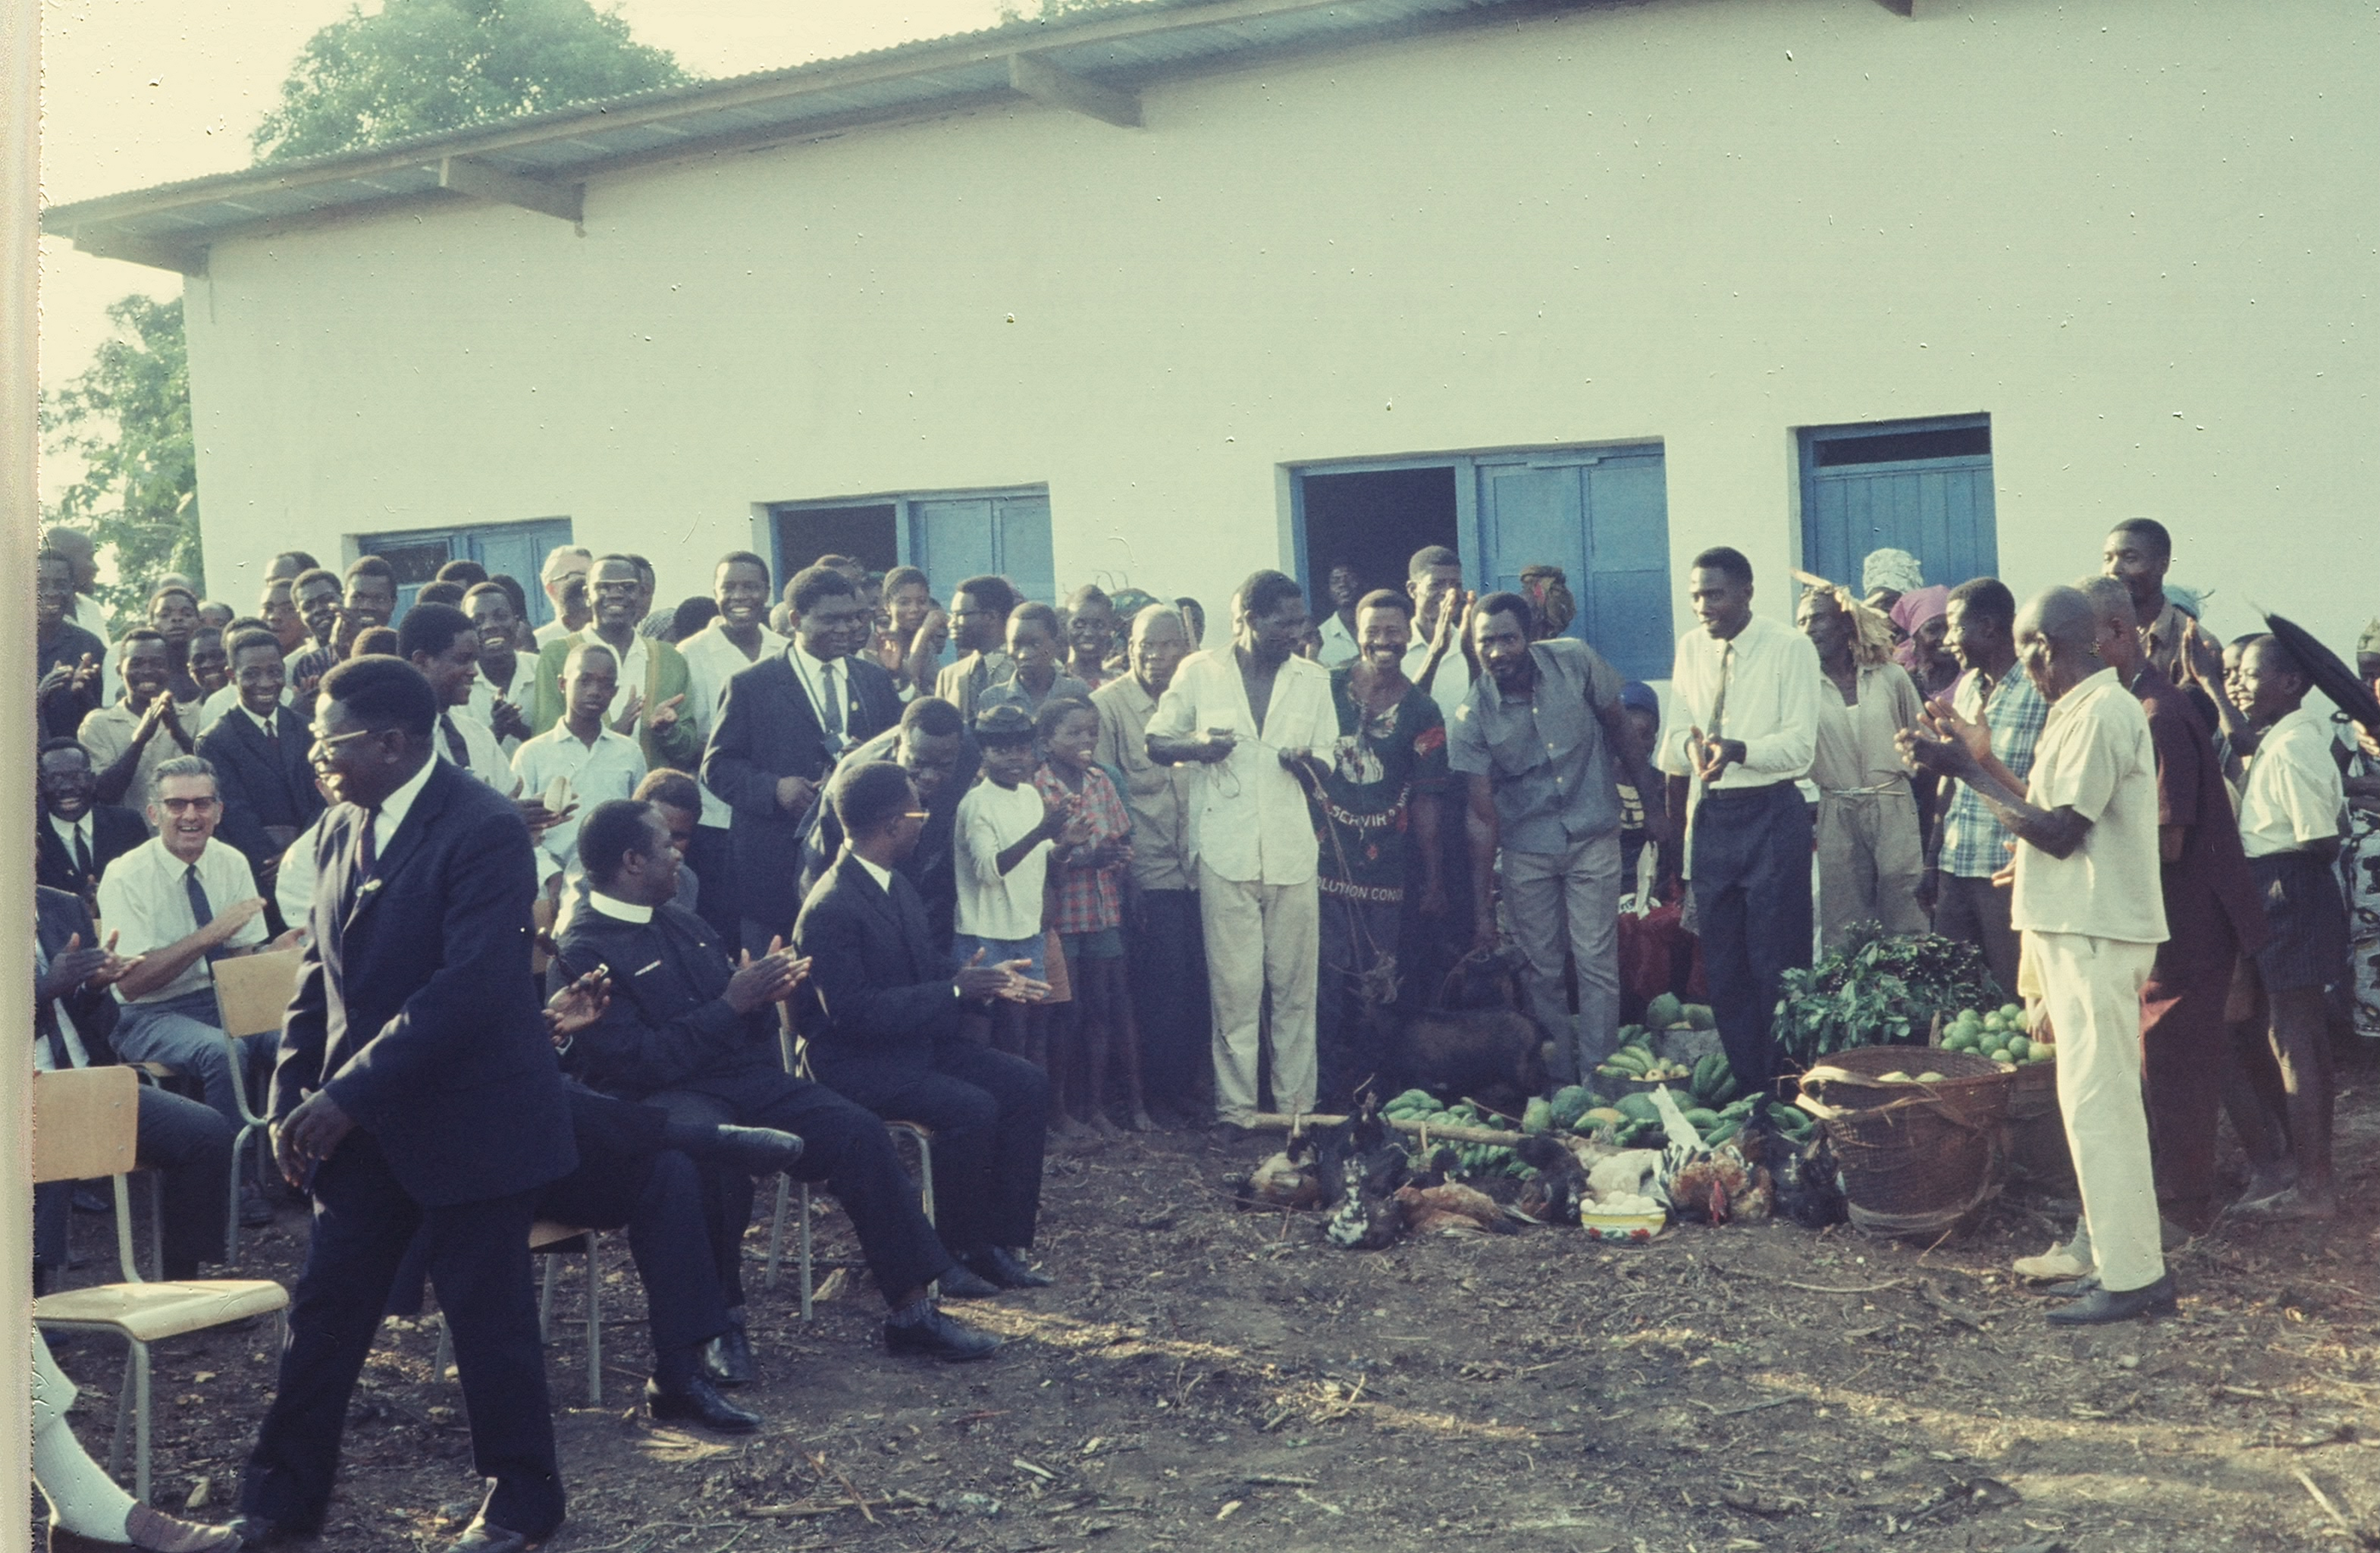 Eqeuateur Province's Governor walks back to his seat after amusing the villagers who have offered him gifts on the occasion.  Leaders of the Province's Protestant denominations of the united Church of Christ of Congo also participated in the dedication